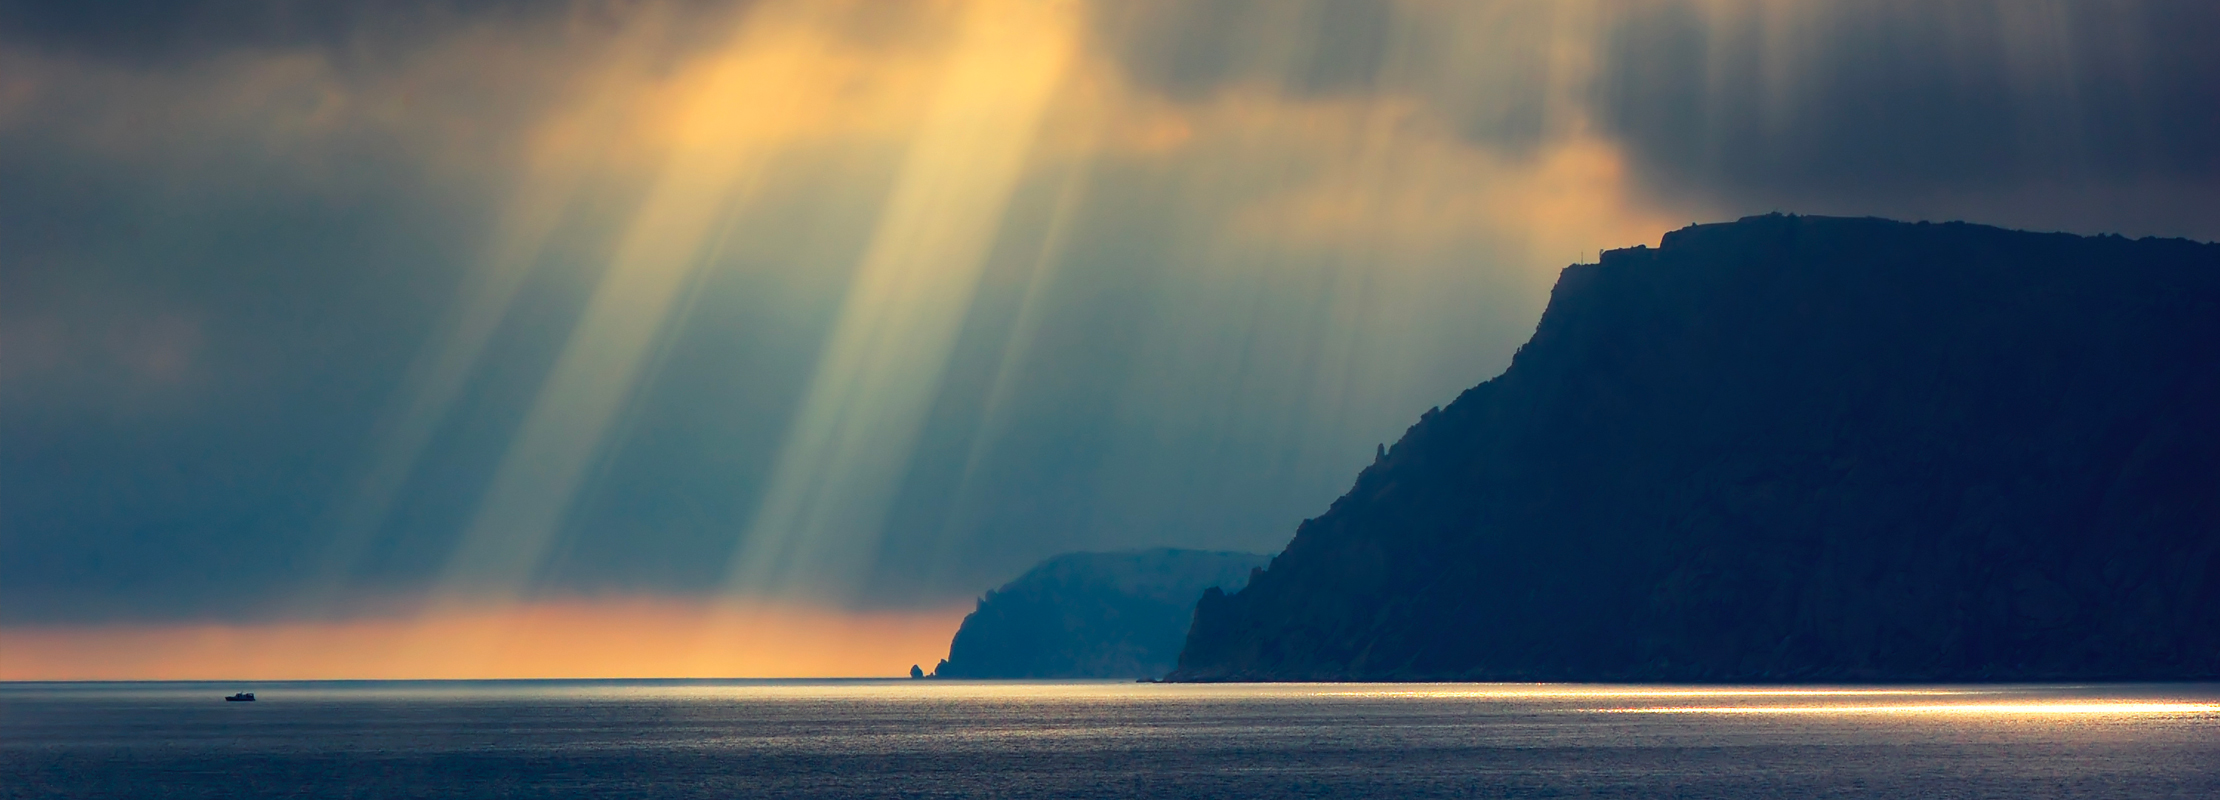 Photo of stormy weather with the sun breaking through over the ocean